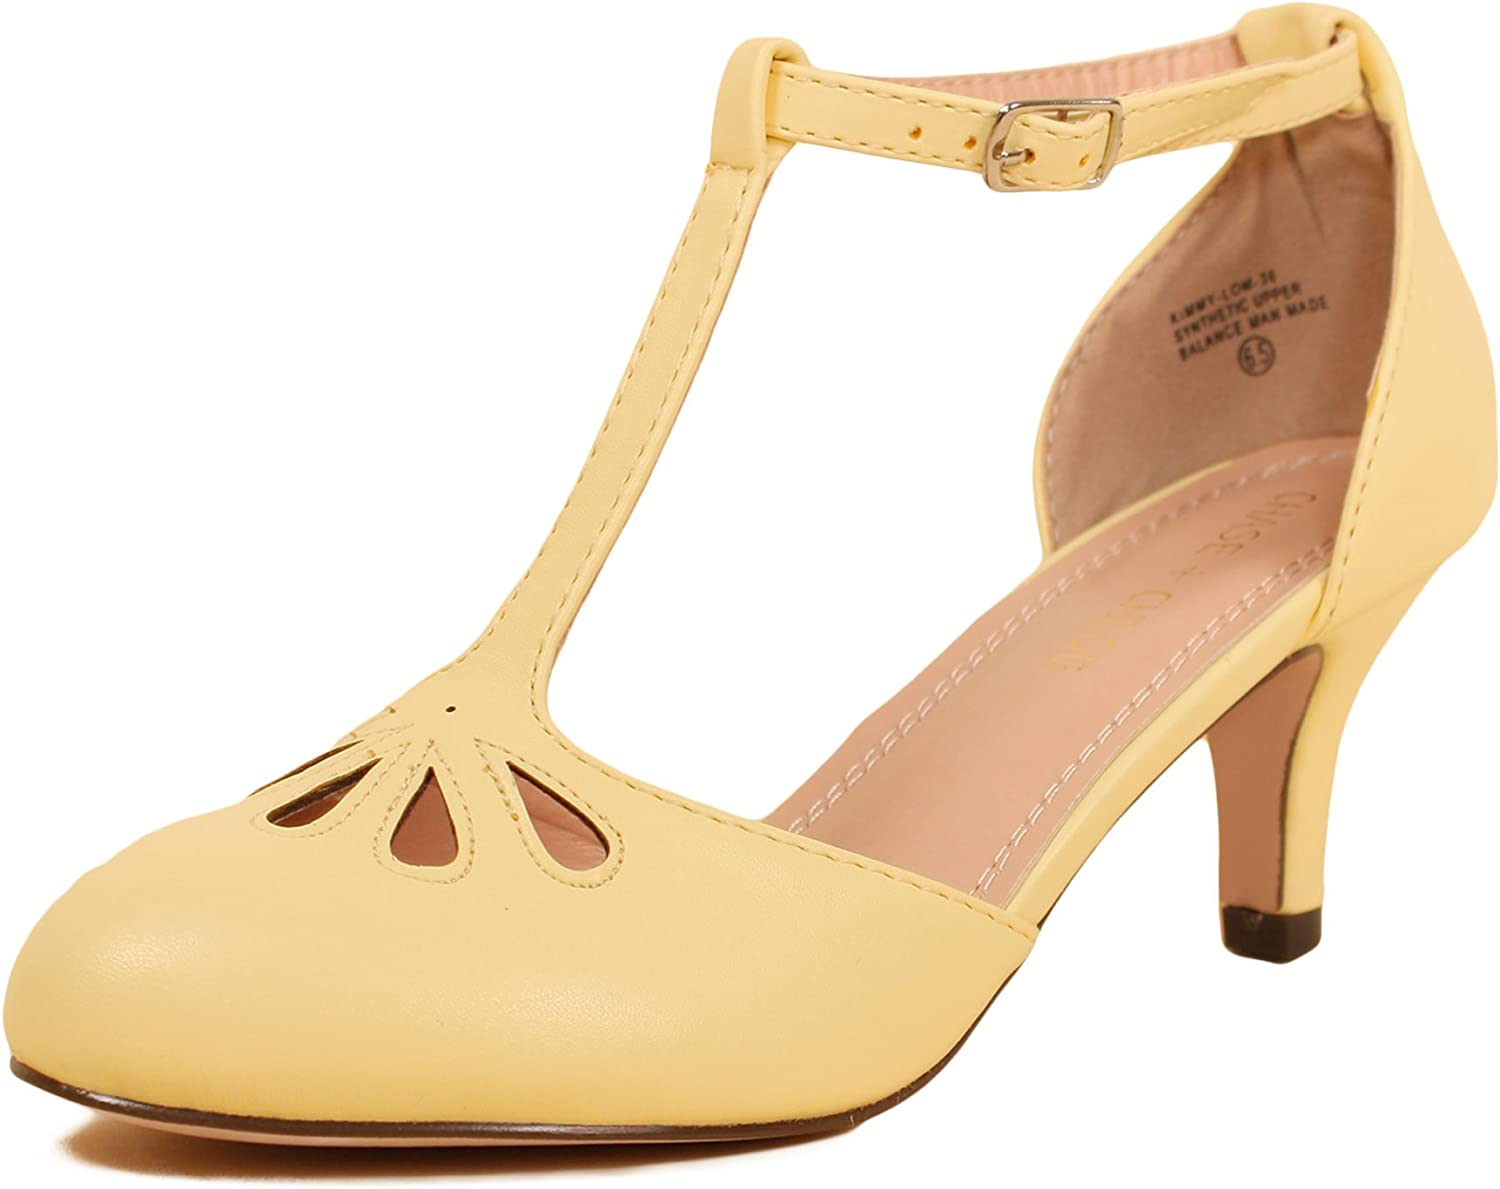 Chase & Chloe Women's Retro Kimmy-36 Mary Jane Teardrop Cut Out T-Strap Low Pump Heel